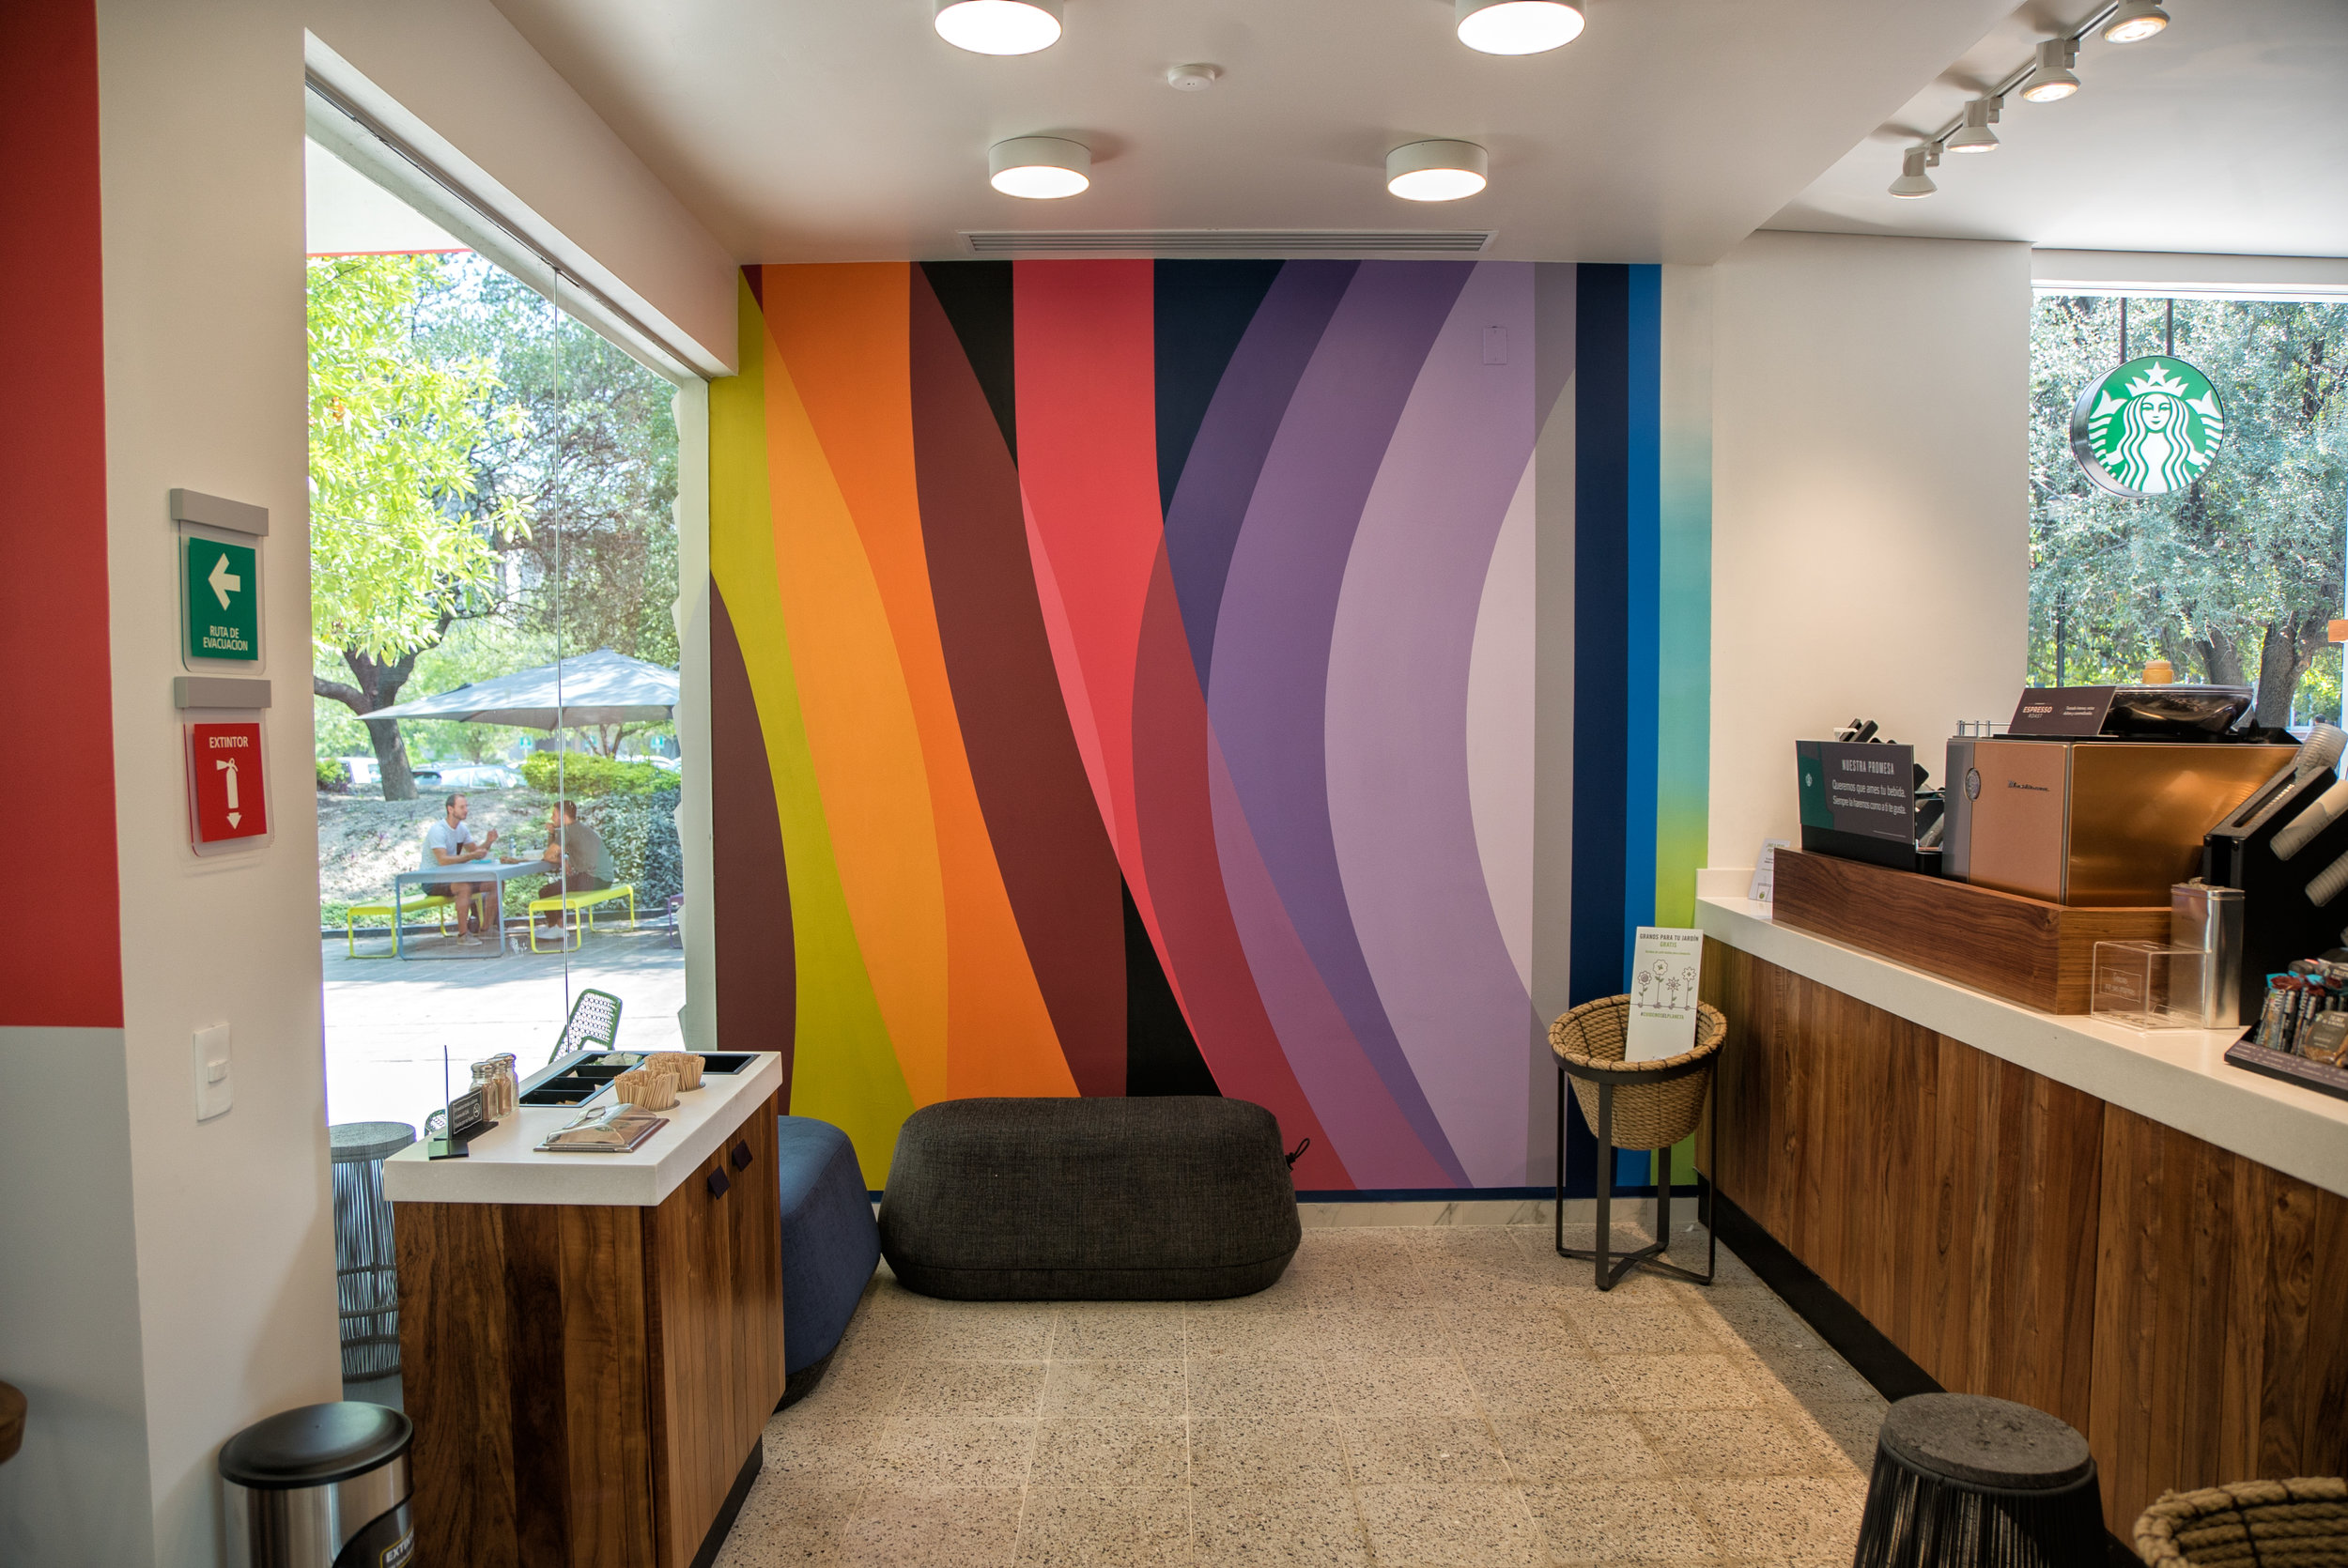 Colorful abstract mural art inside bank at University in Monterrey